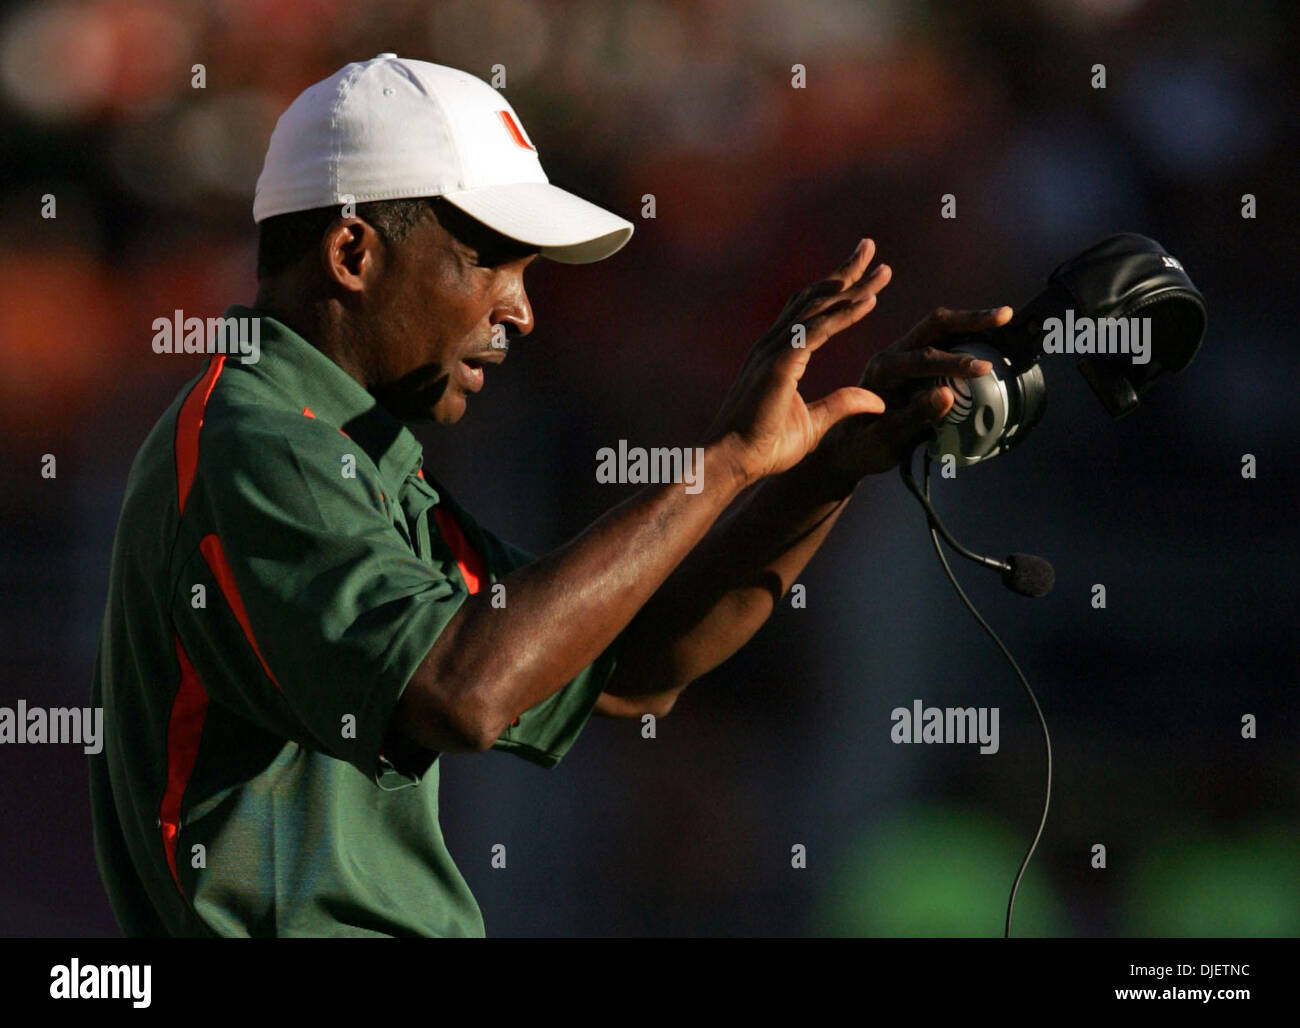 Oct 20, 2007 - Tallahassee, Florida, USA - Canes coach RANDY SHANNON. (Credit Image: © Allen Eyestone/Palm Beach Stock Photo